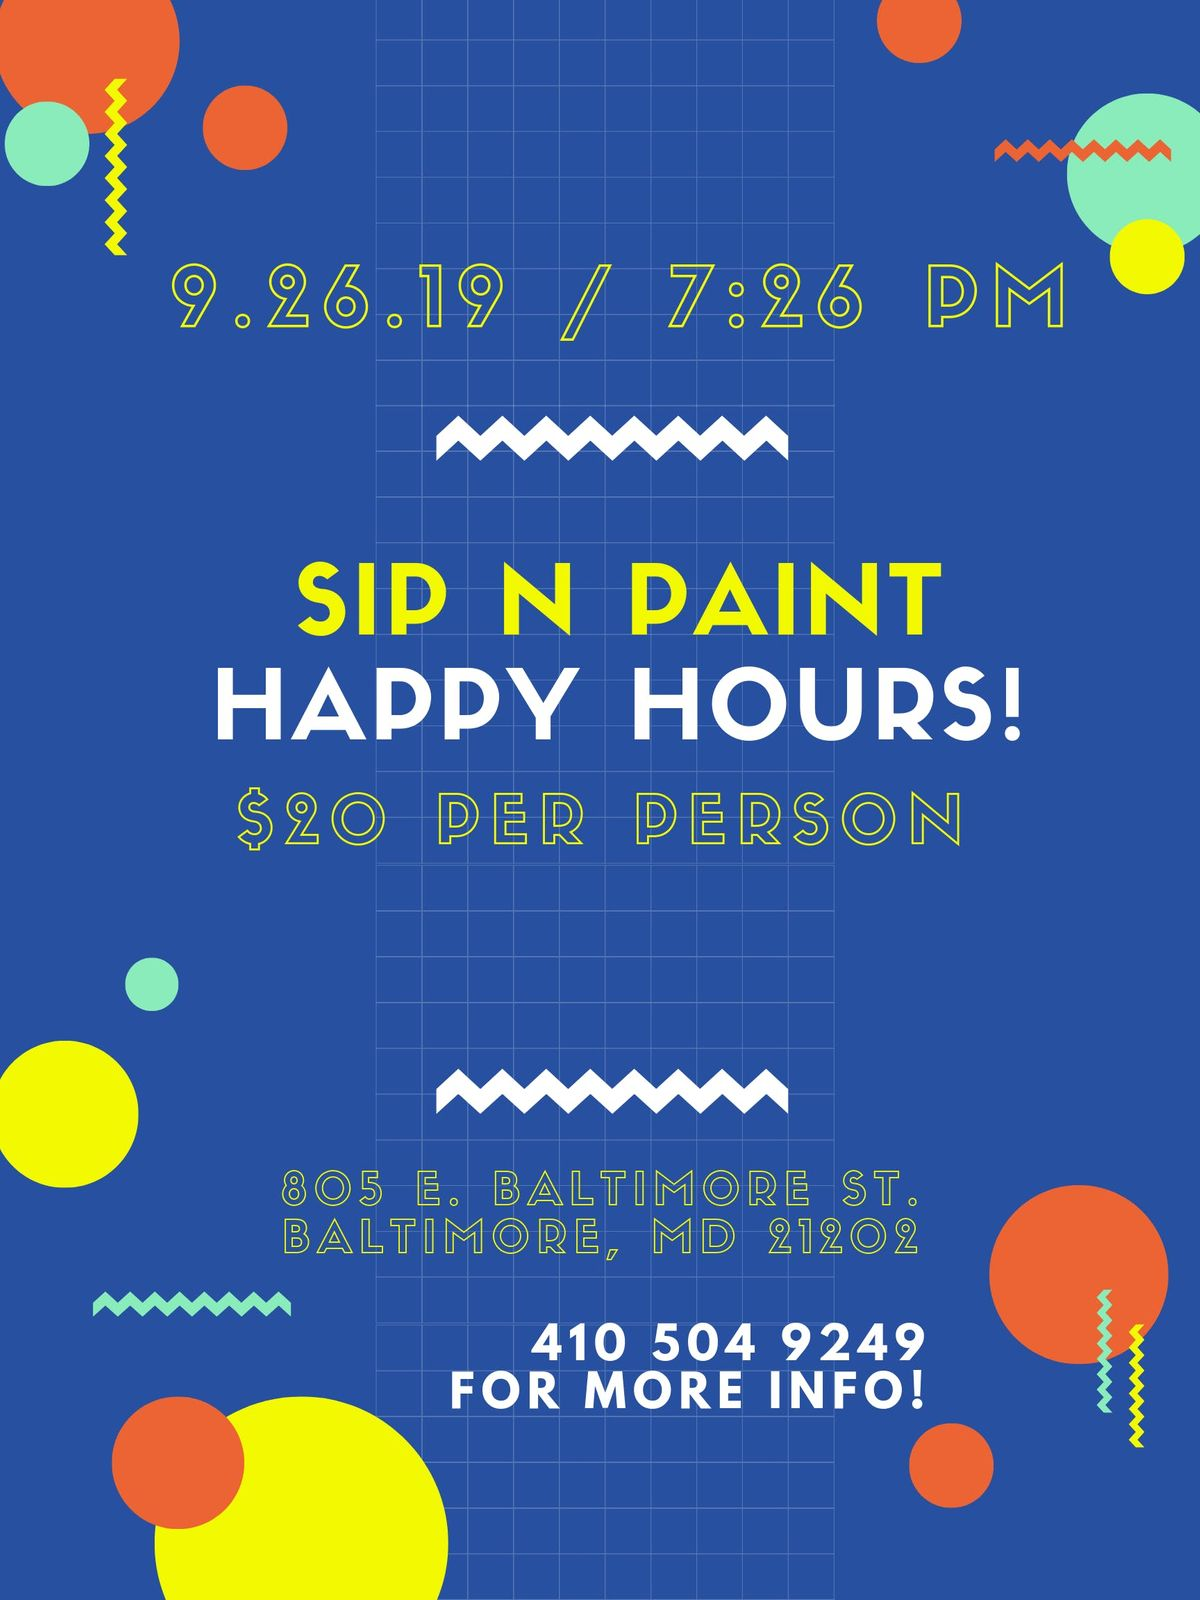 Sip N Paint Happy Hours At An Art Gallery